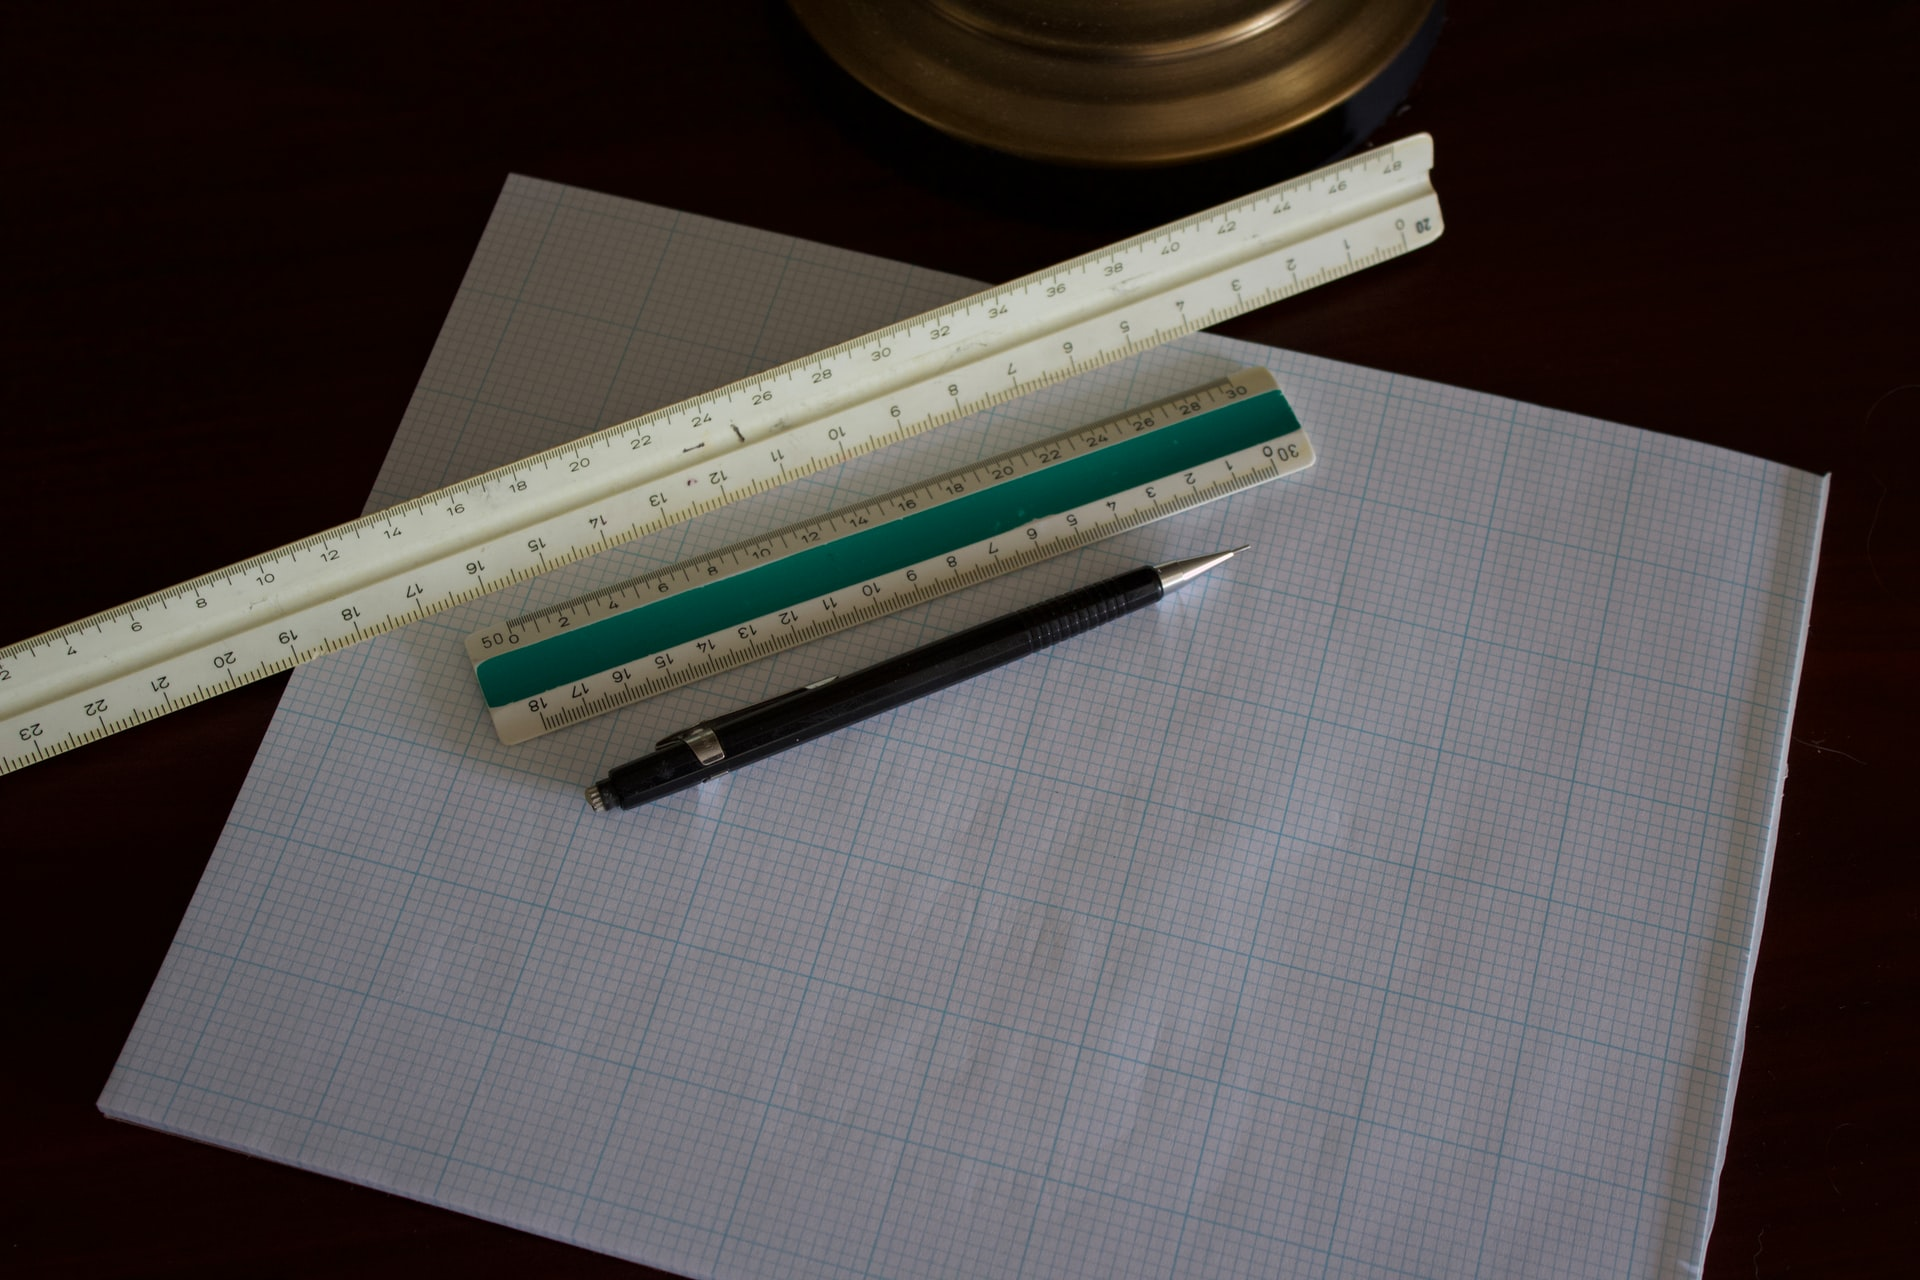 Graph paper, rulers, and a pen